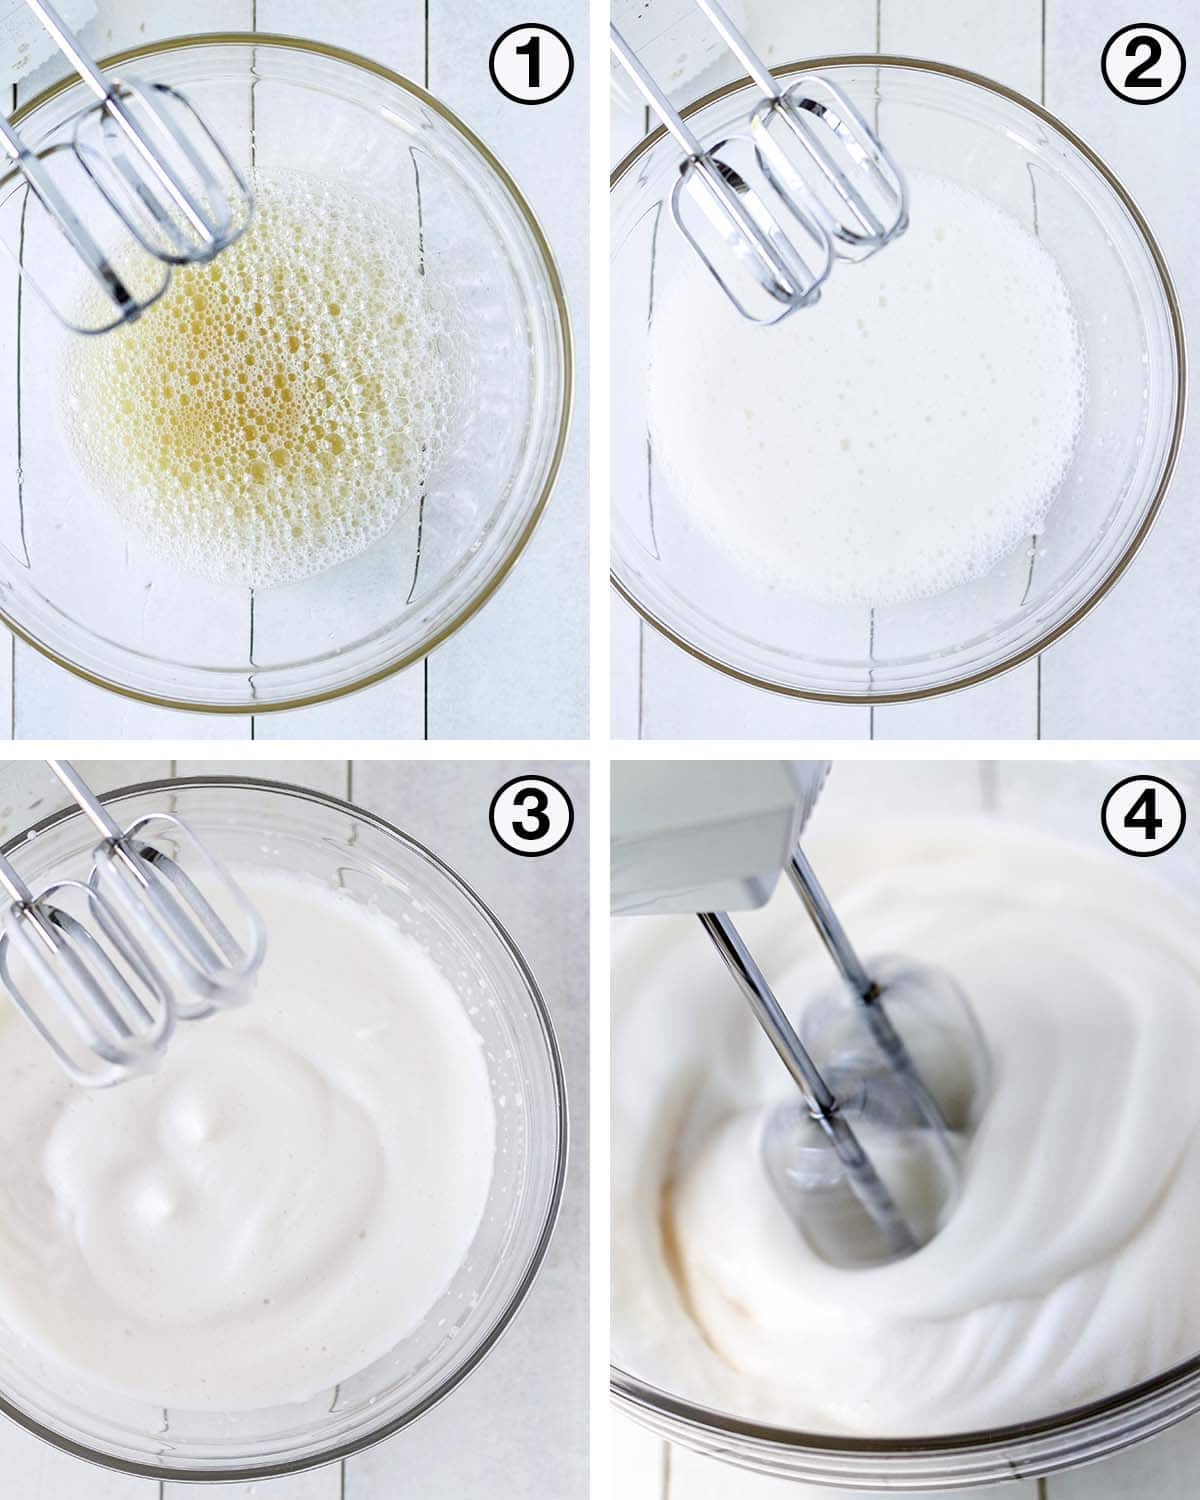 A collage of four images showing the progression of aquafaba when whipping it.